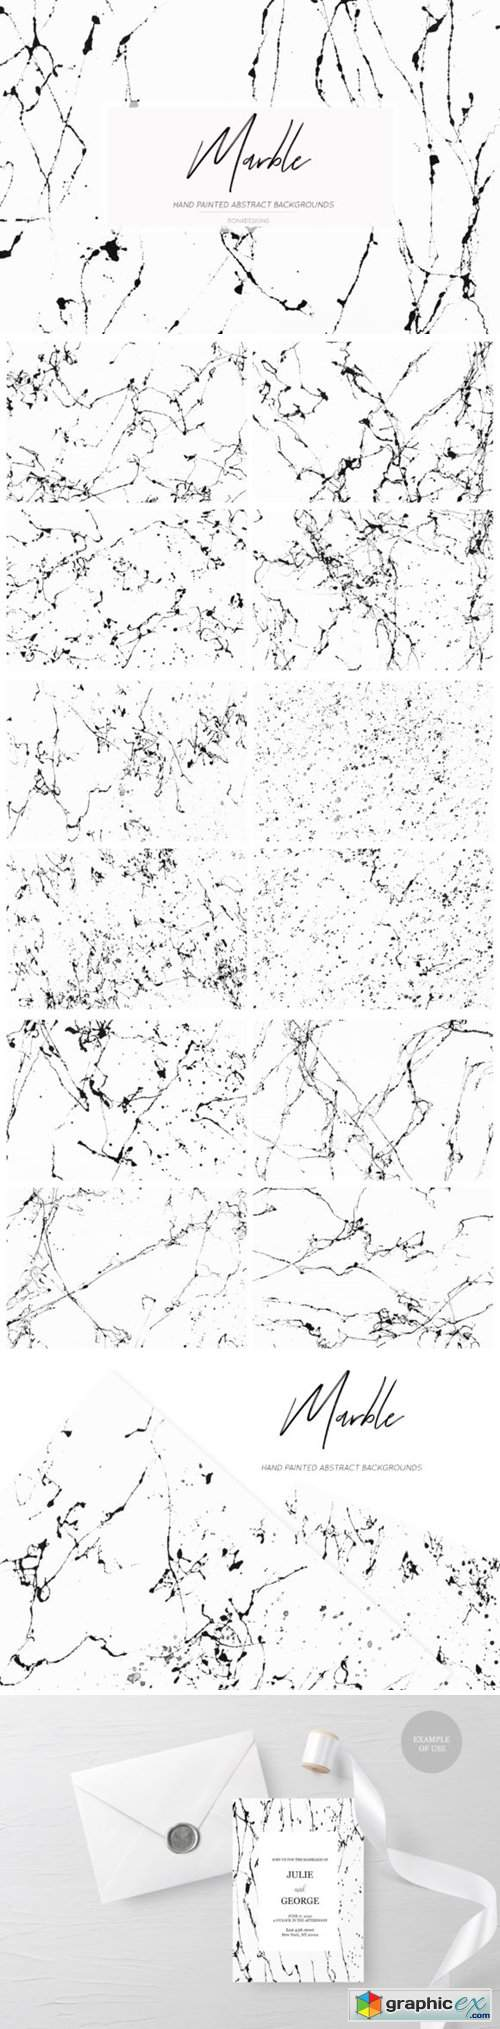 Black White Marble Backgrounds